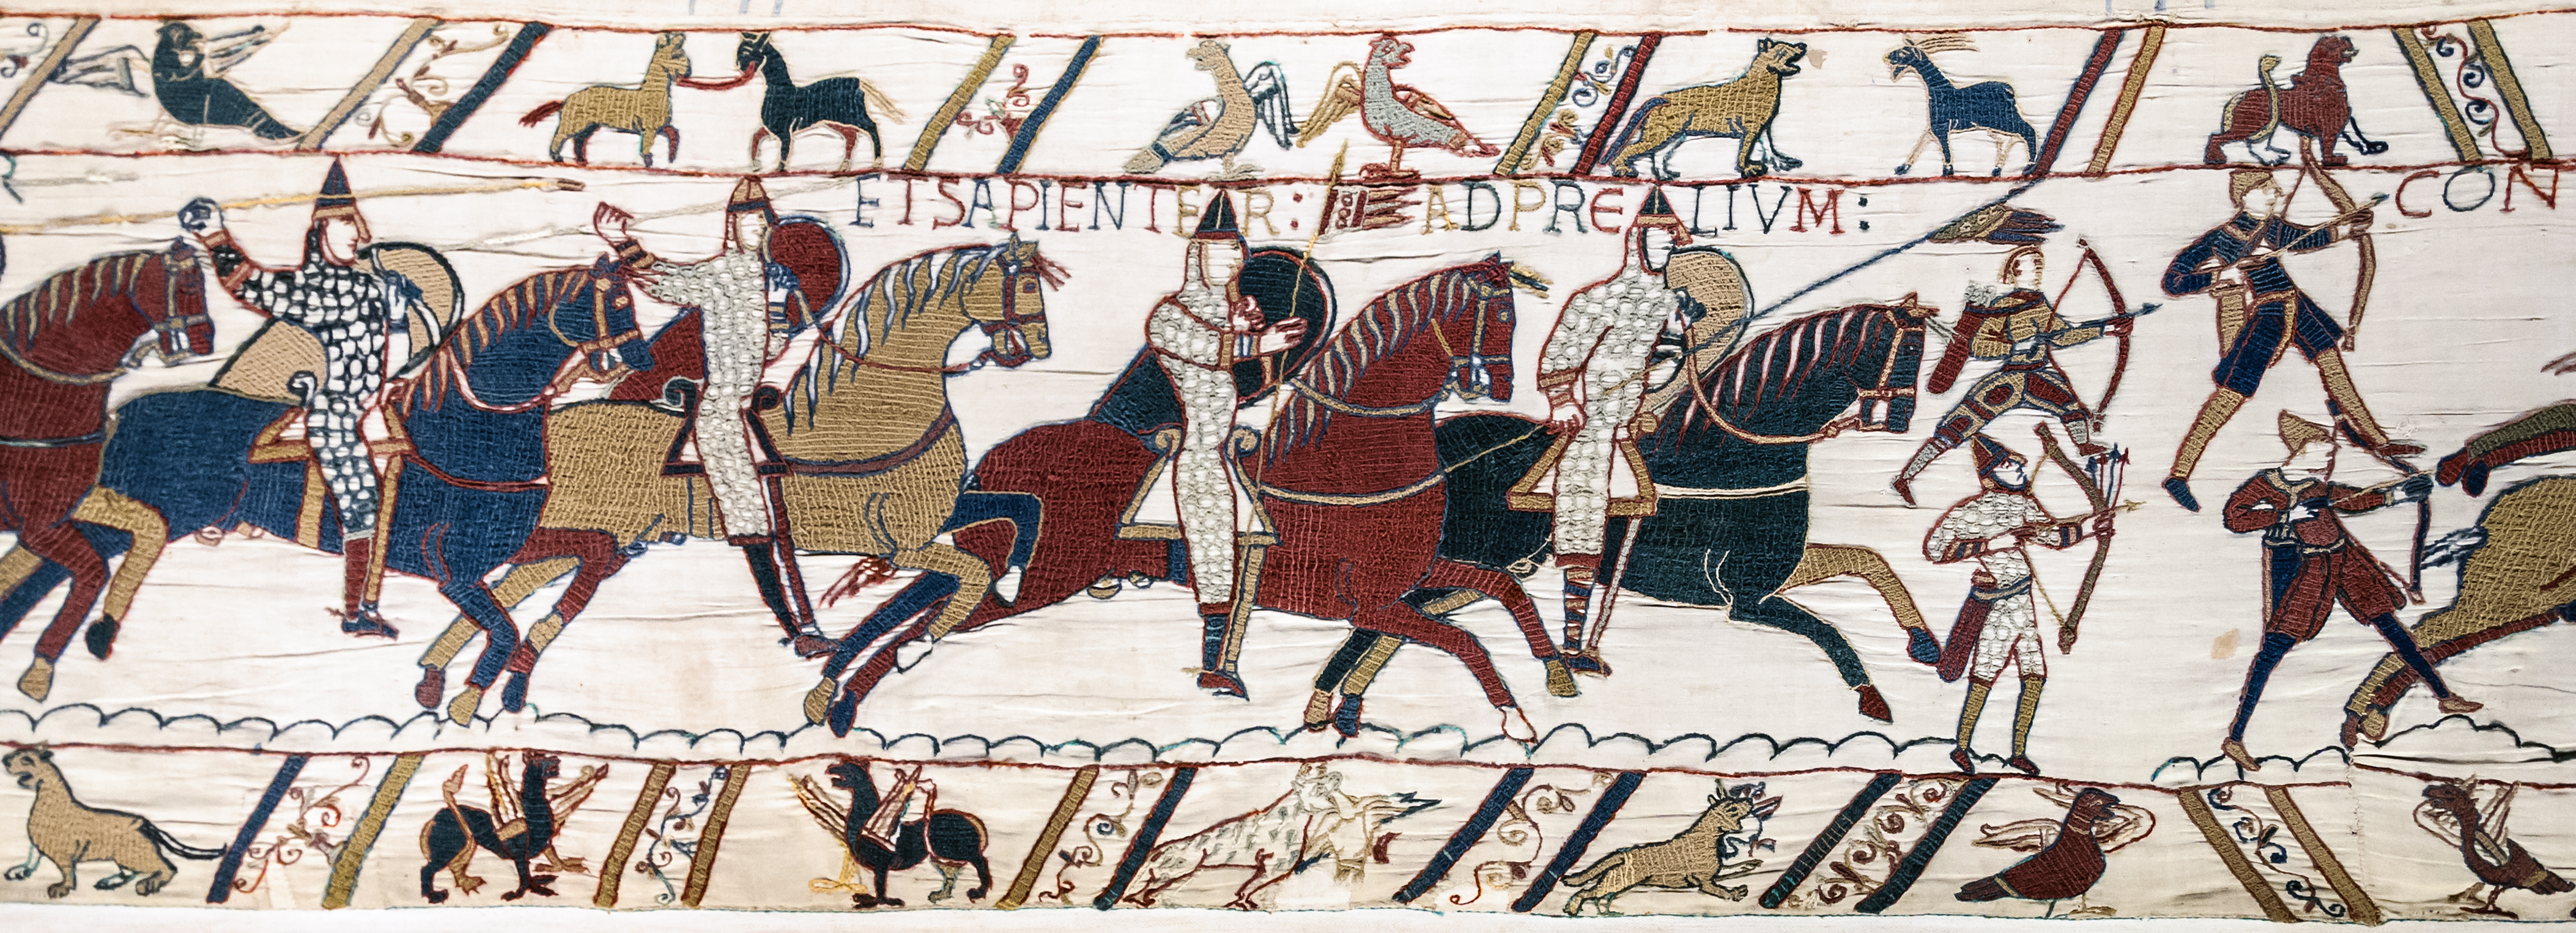 File:Bayeux Tapestry scene51 Battle of Hastings Norman knights and archers.jpg - Wikimedia Commons